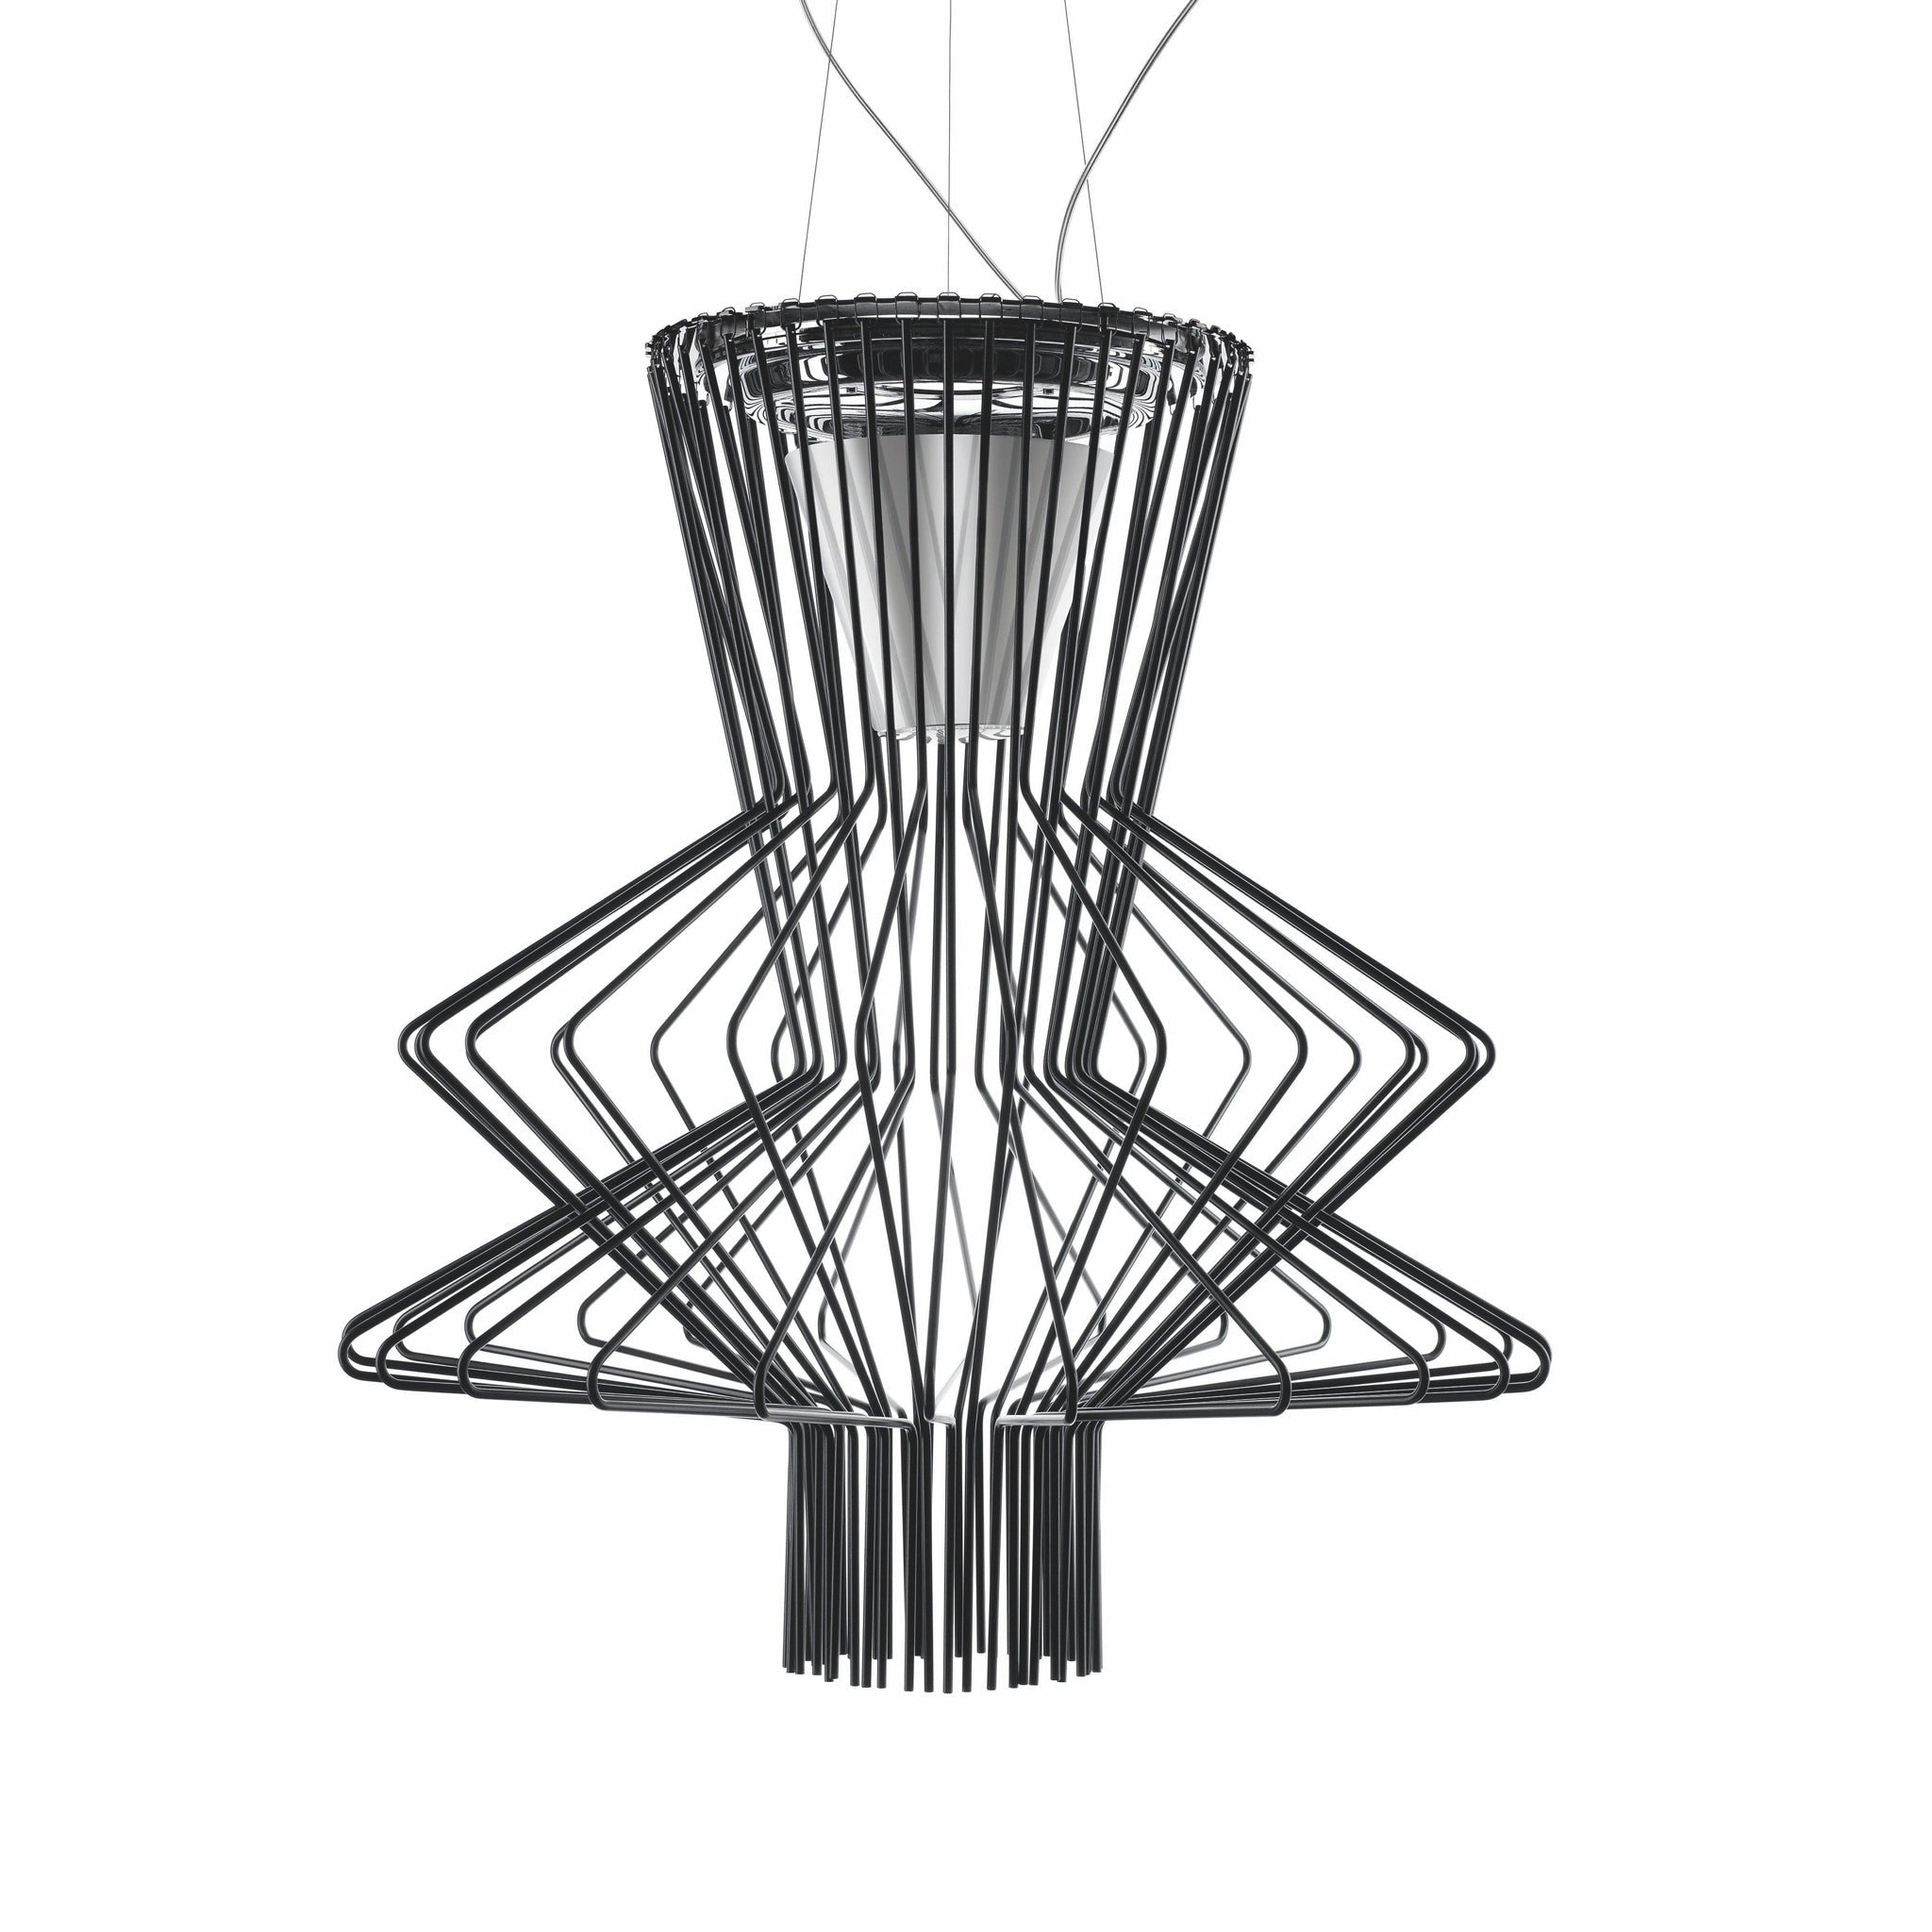 Allegro Pendant Lamp by Foscarini